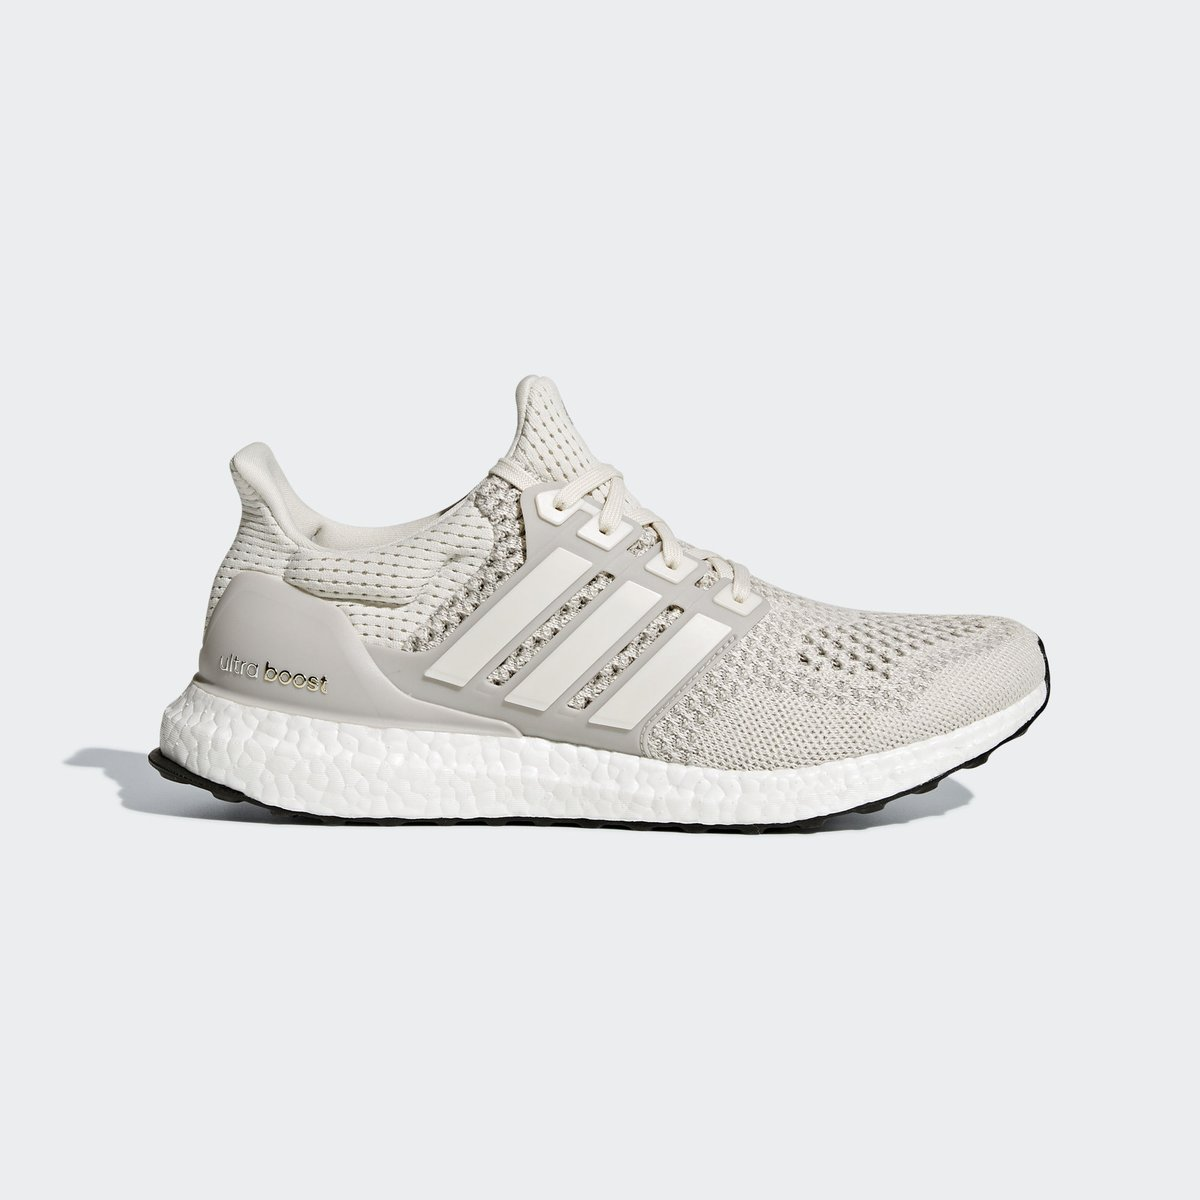 83f301153 The beloved fan favorite that brought Boost technology to the top was the  Ultra Boost 1.0 silhouette. Til this day it is one of the most sought after  ...